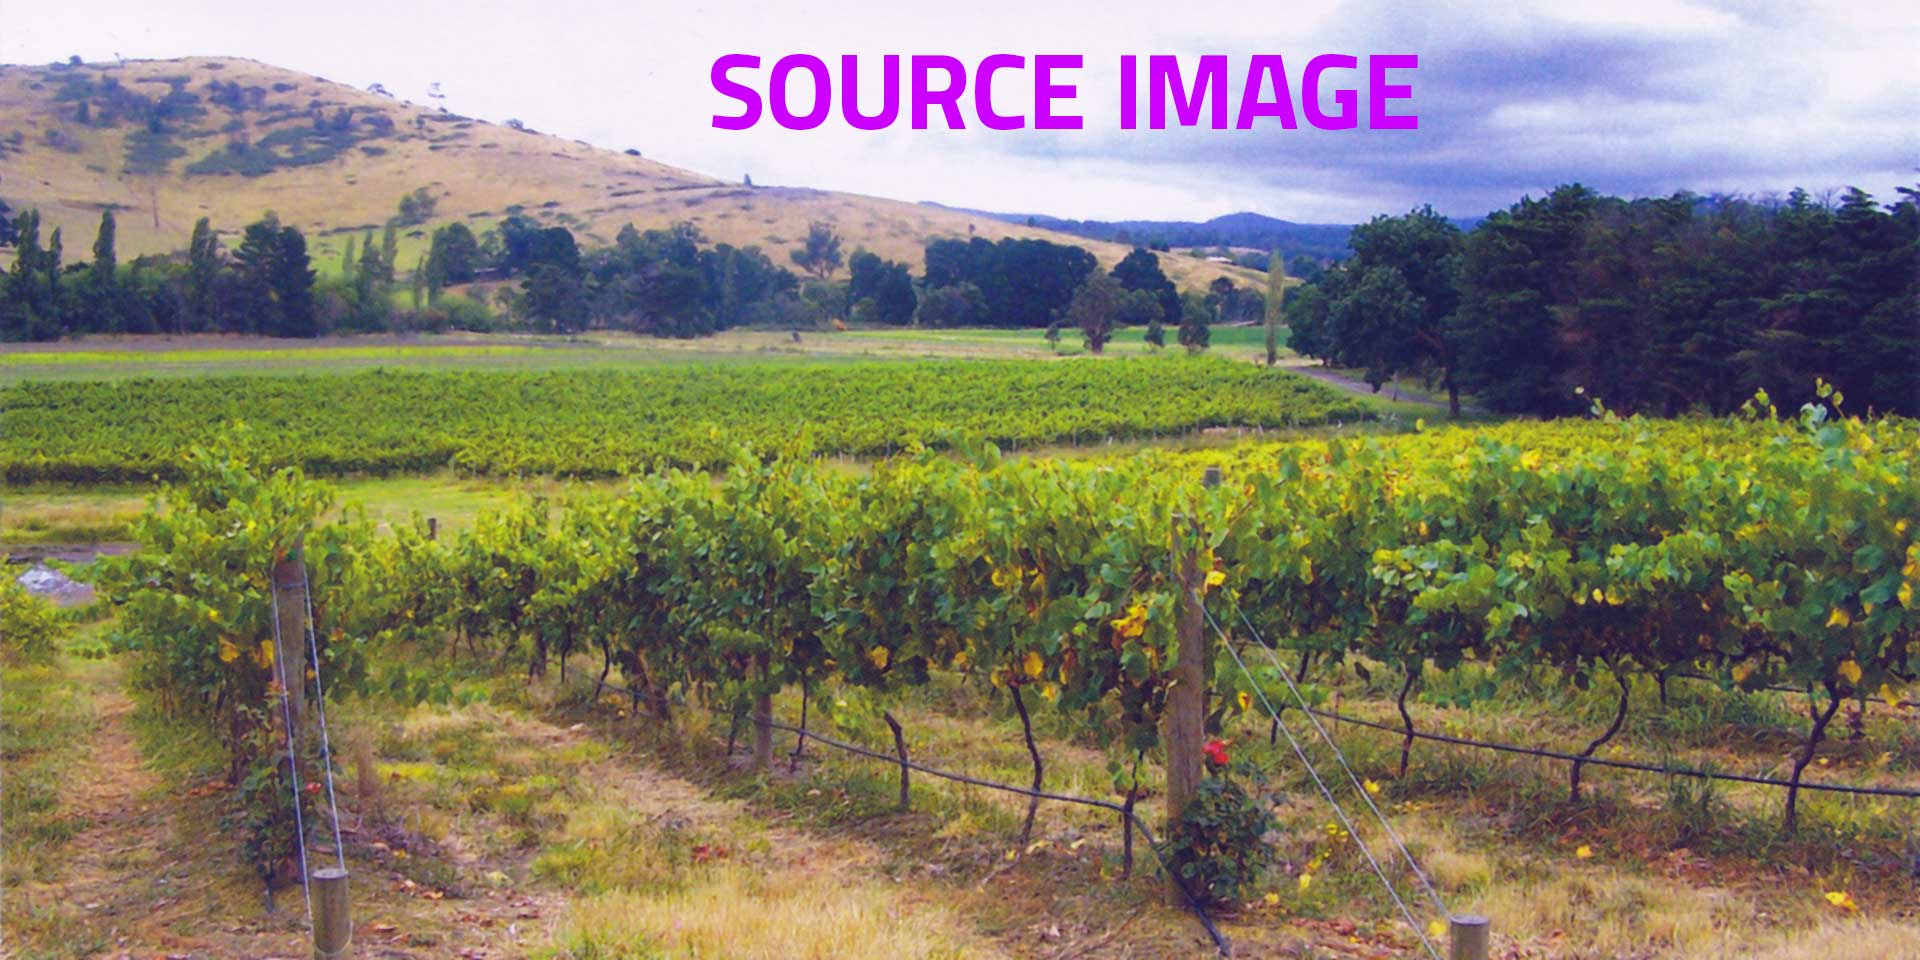 Photorealist painting - Vineyard - Source image